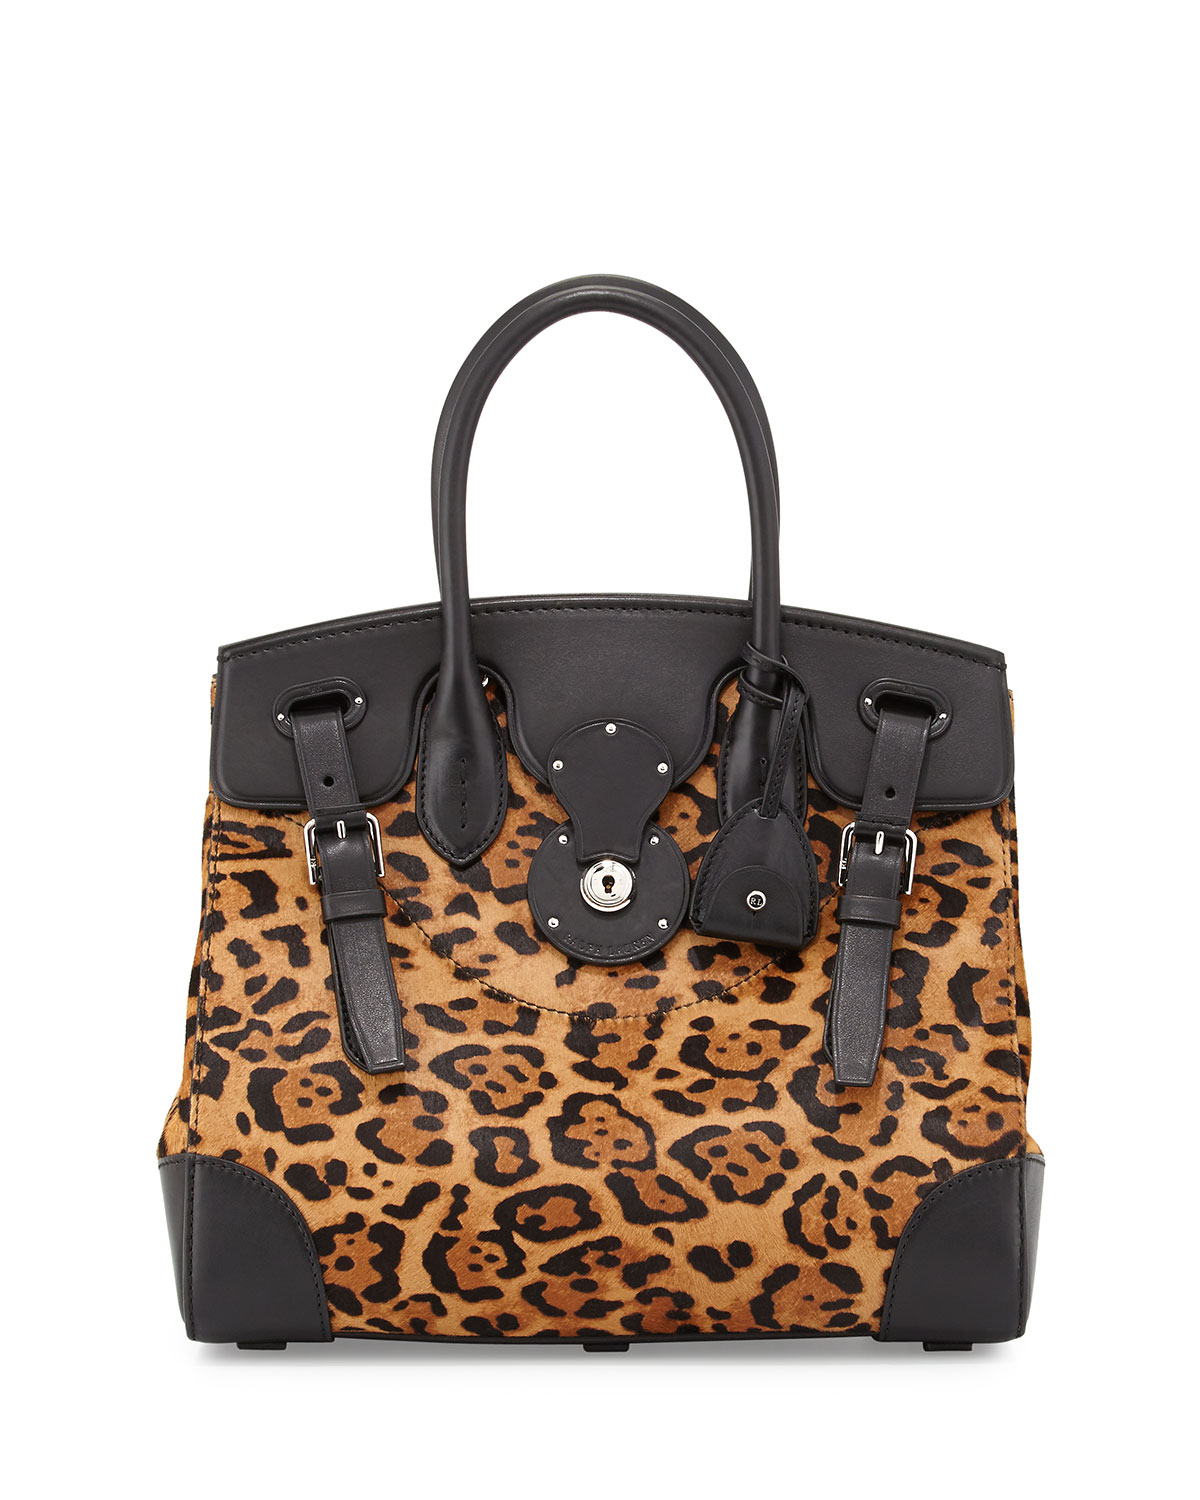 1b037d7372 Ralph Lauren Soft Ricky 33 Leopard-Print Calf Hair Satchel Bag ...